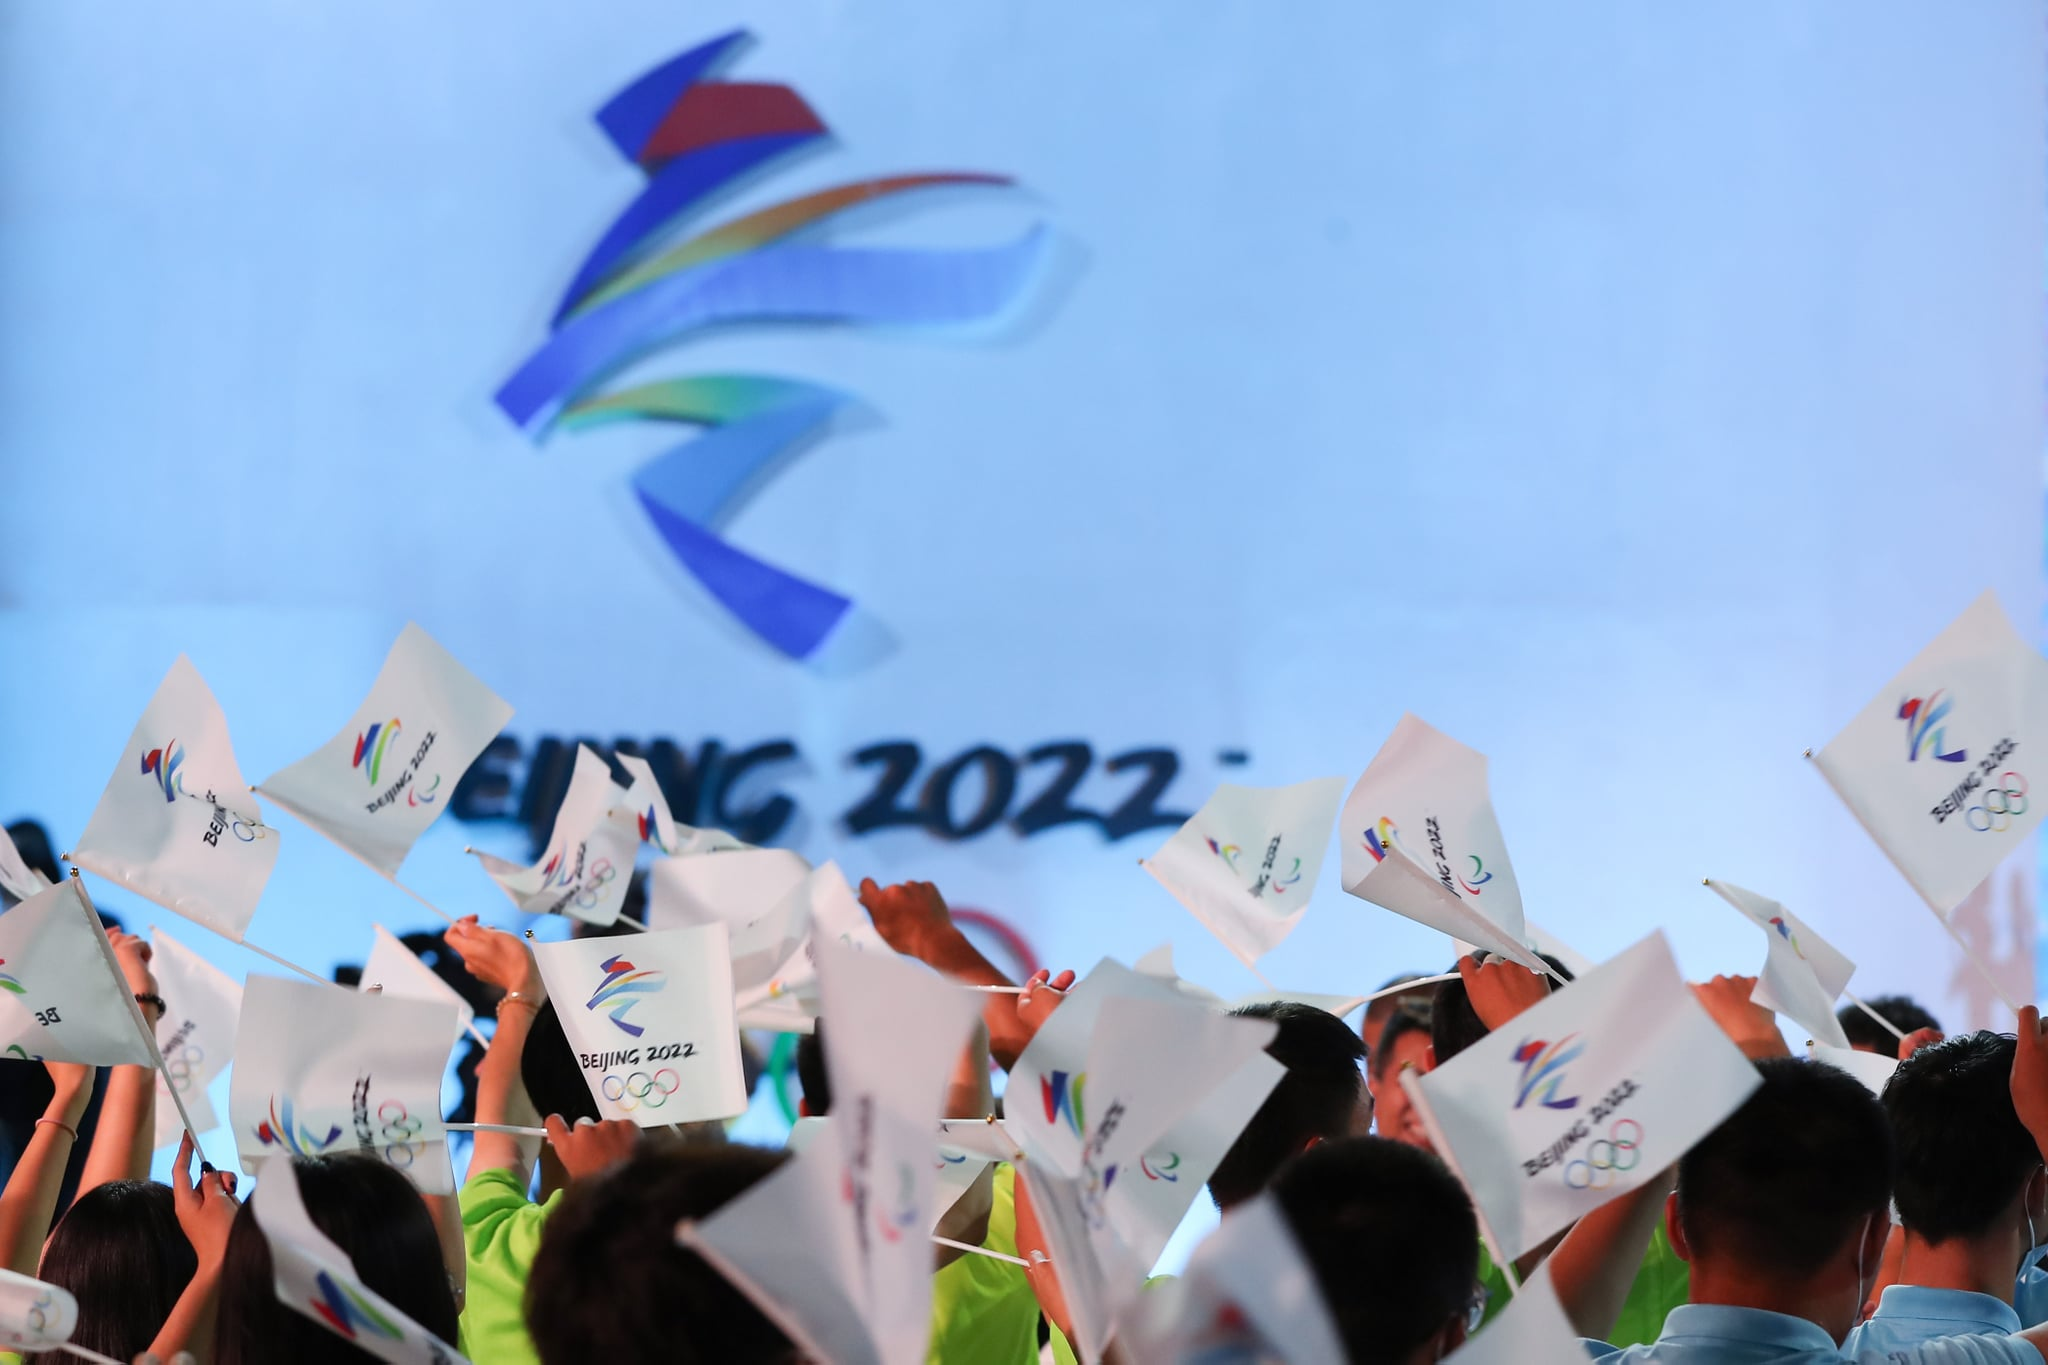 BEIJING, CHINA - SEPTEMBER 17: People wave flags of the Beijing 2022 Winter Olympic Games during the Beijing 2022 Winter Olympic & Paralympic Games Motto Launch Ceremony on September 17, 2021 in Beijing, China. (Photo by Emmanuel Wong/Getty Images)